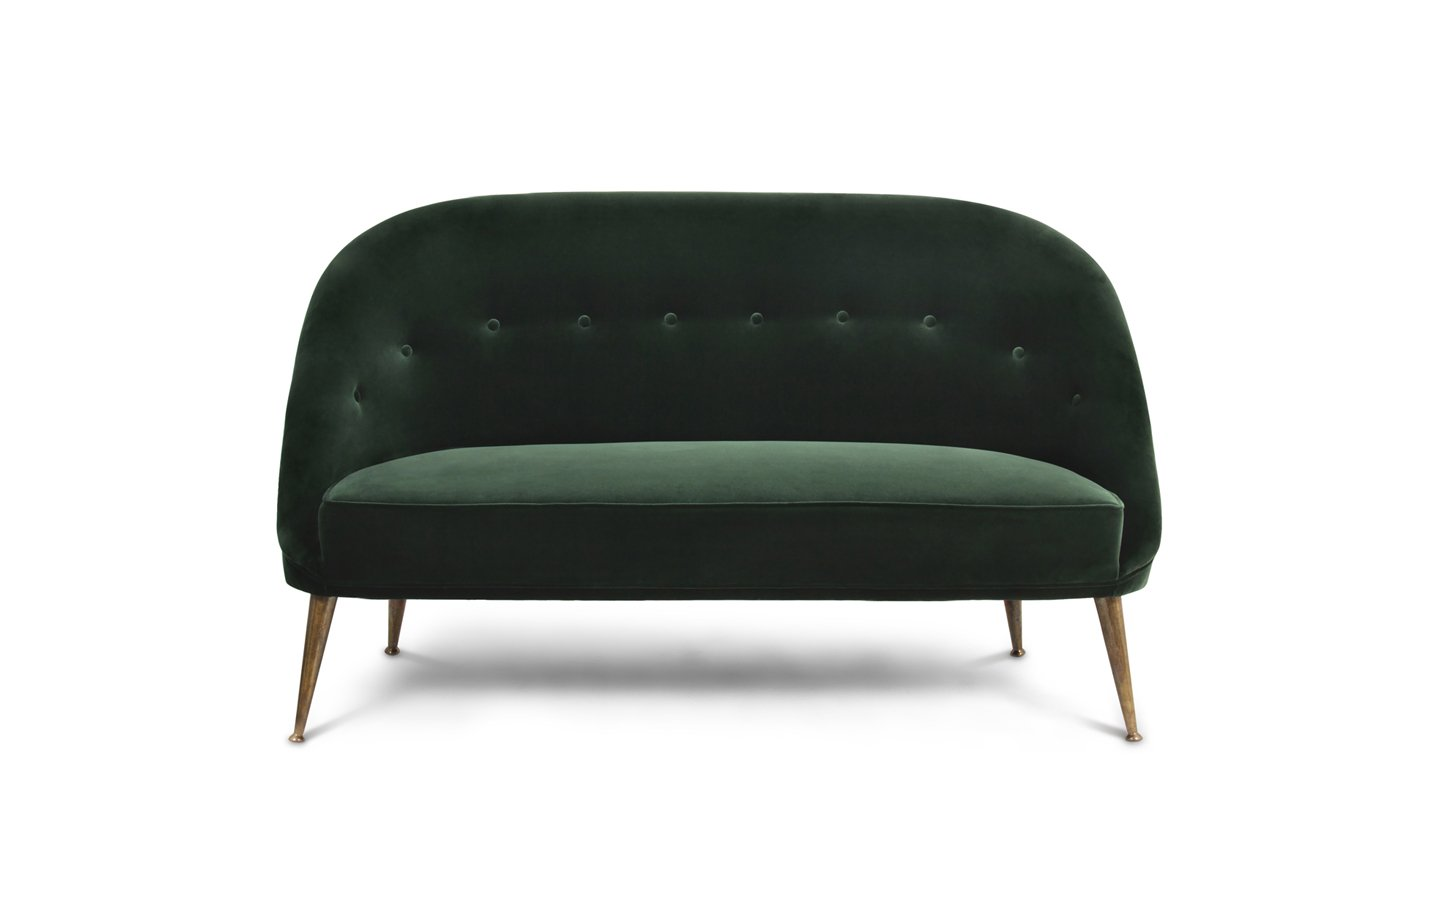 Malay sofa two seater – green